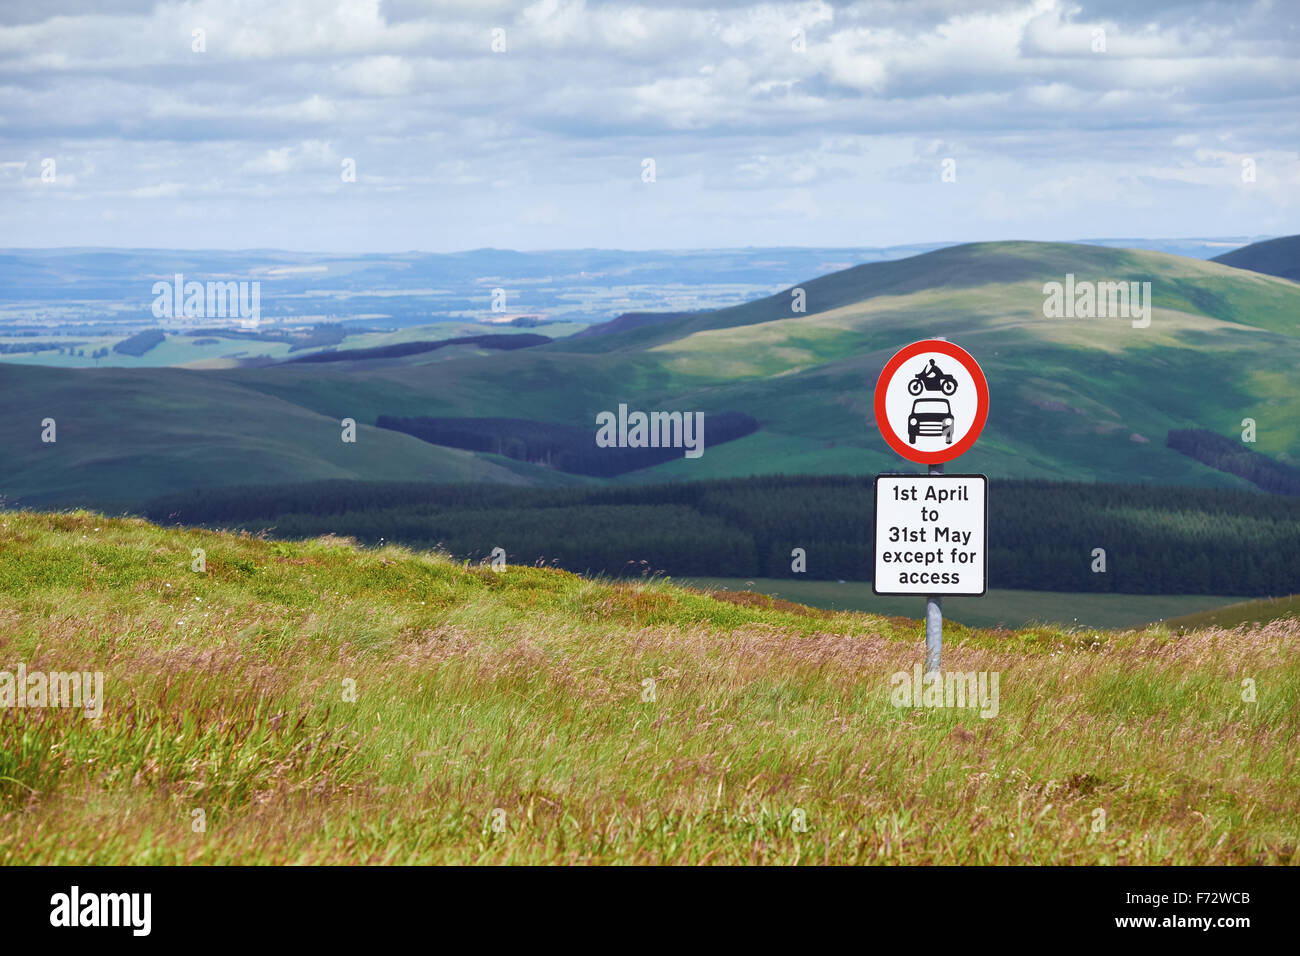 No motor vehicles sign in the Northumberland Countryside, England,UK. - Stock Image